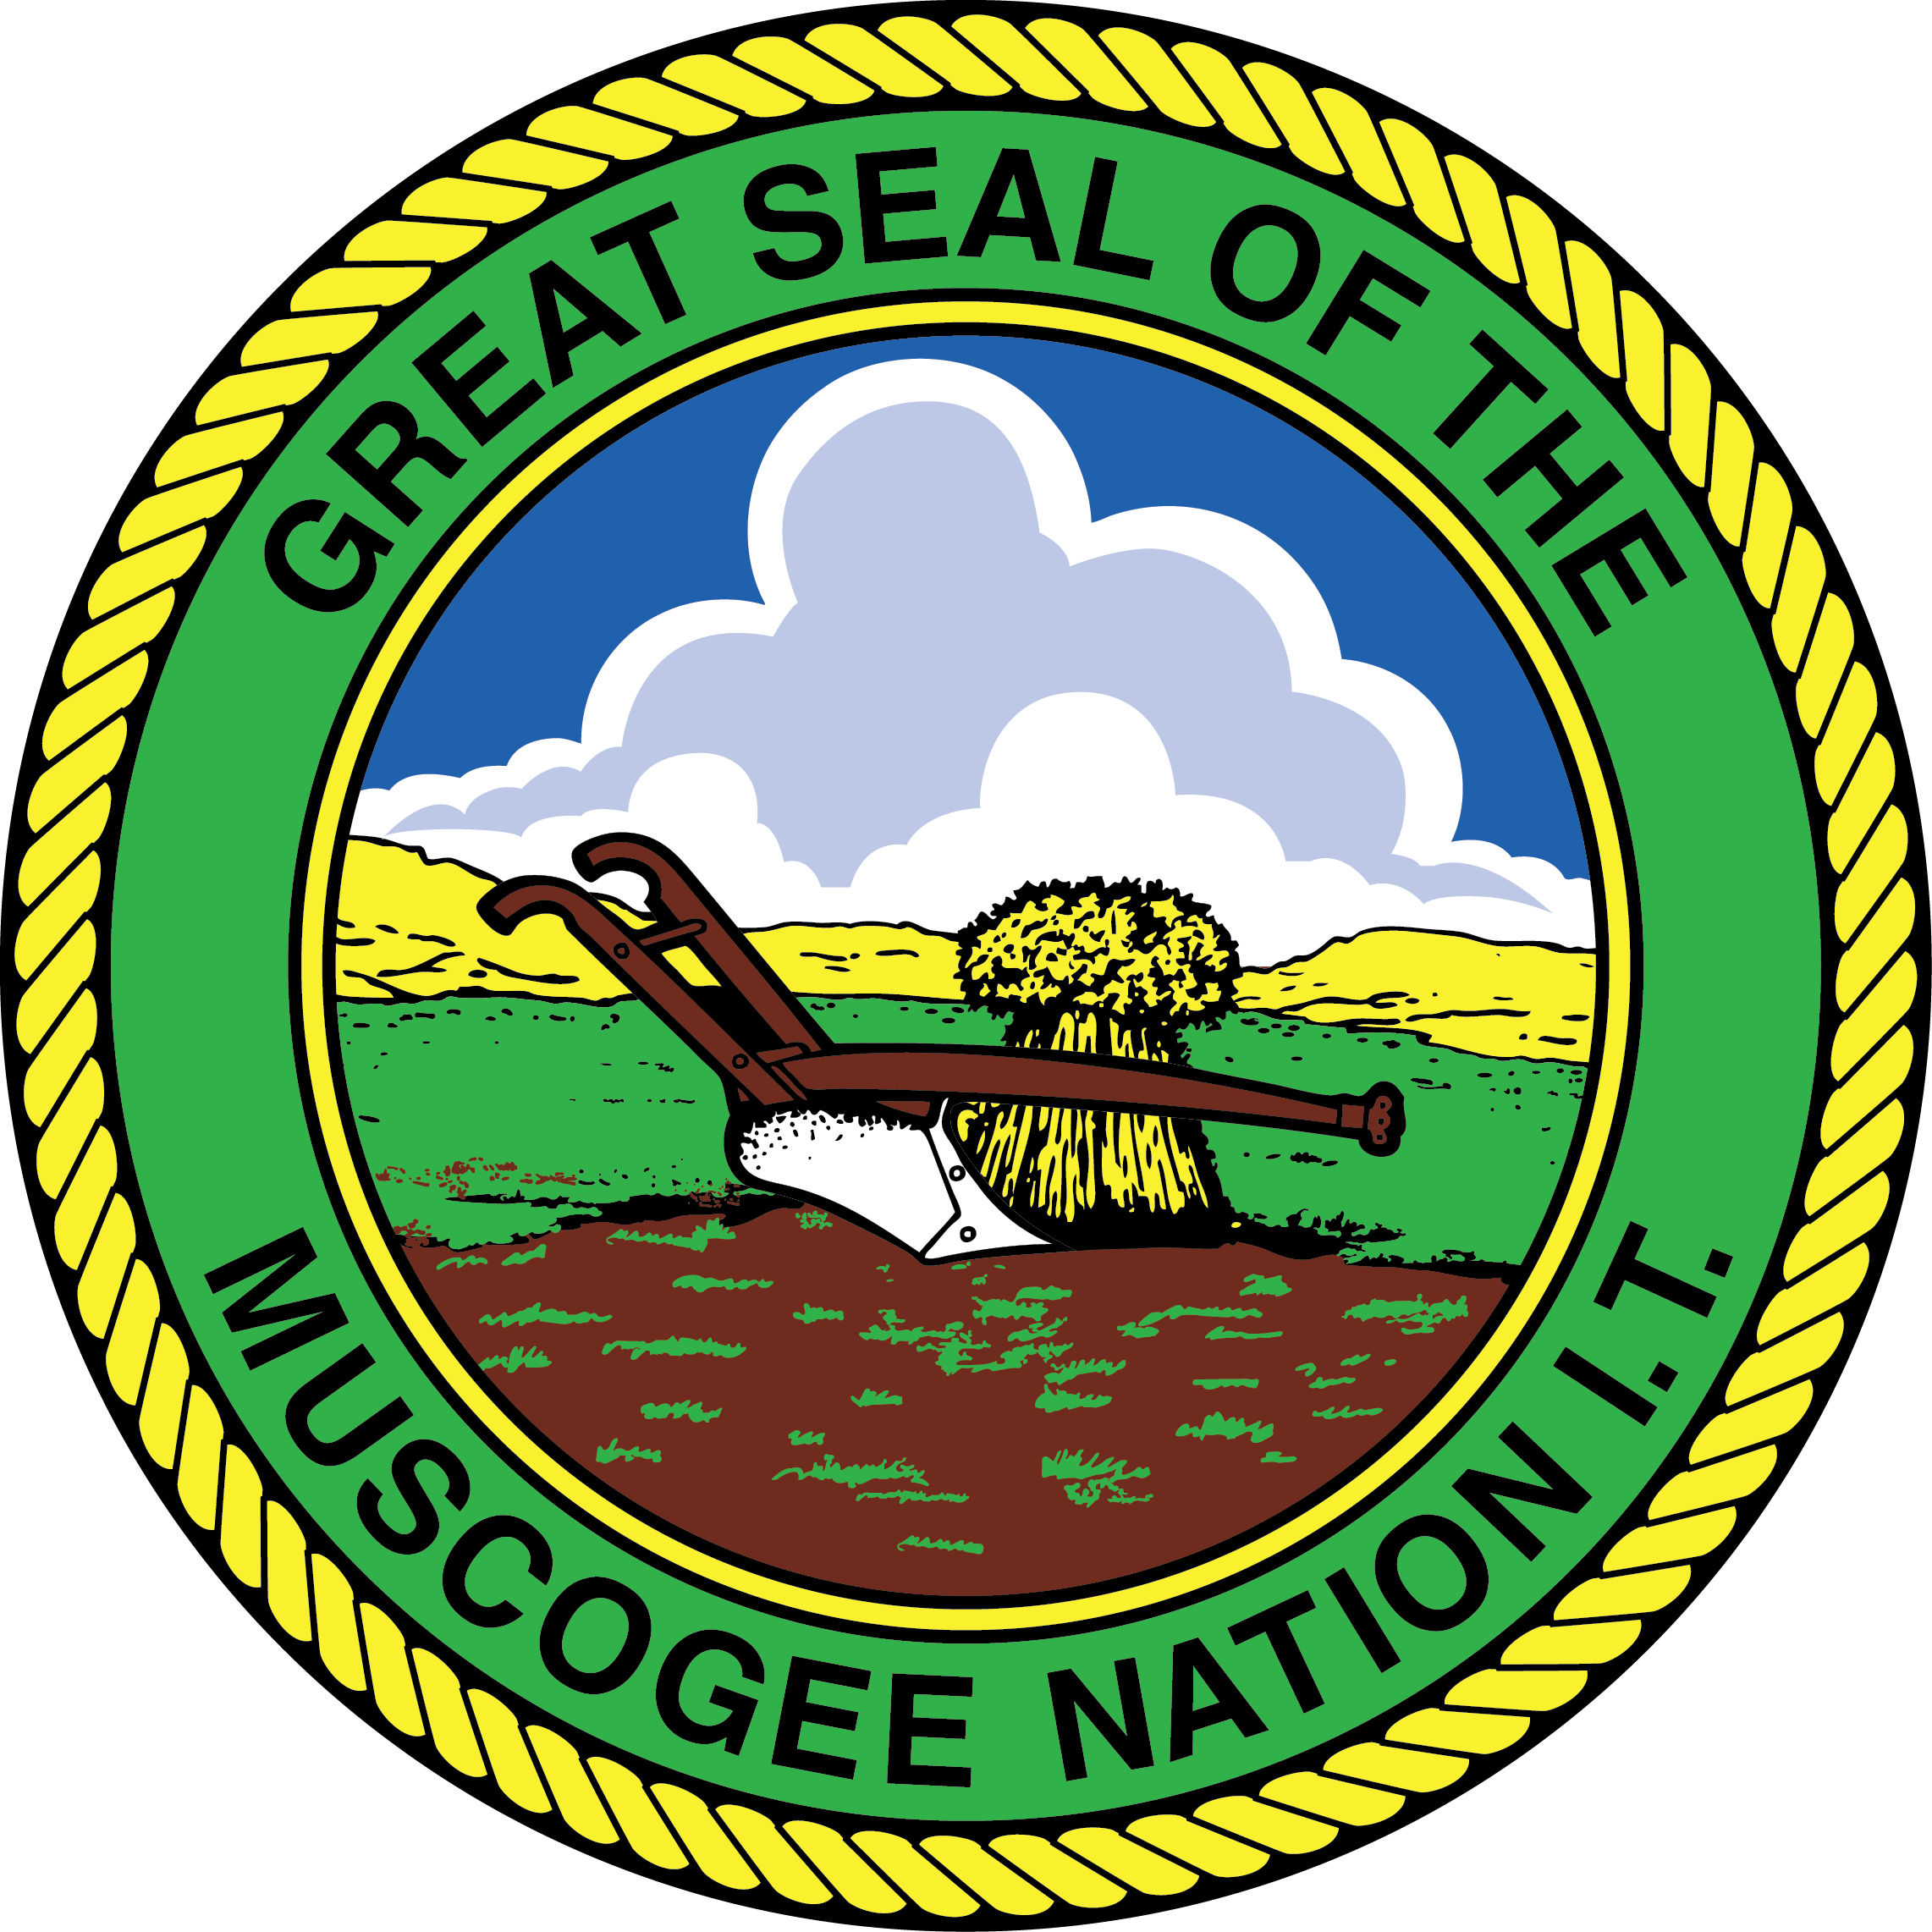 Muscogee (Creek) Nation News Room logo